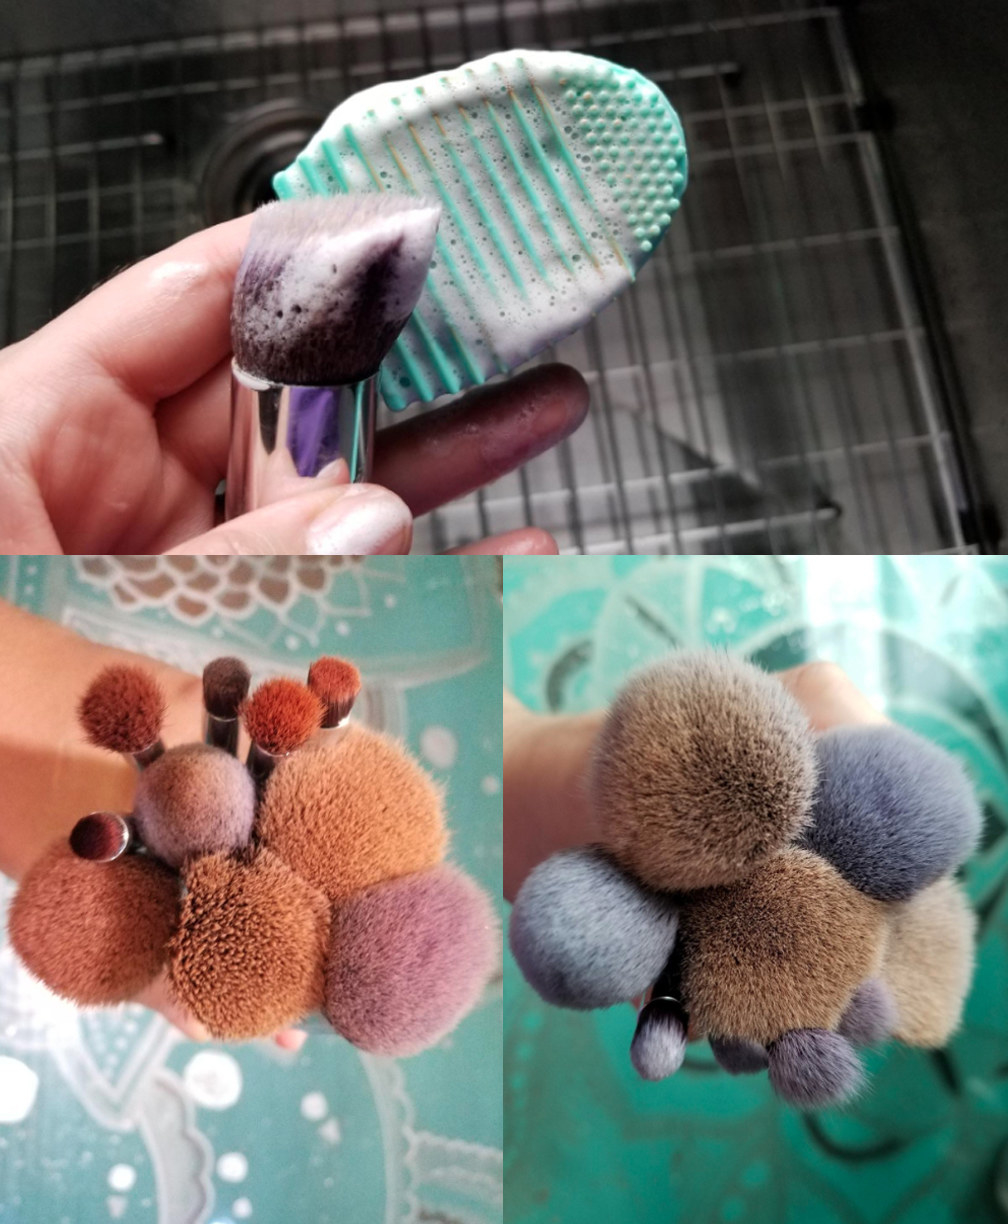 a soapy brush and textured silicone egg; before: dirty brushes looking pink and orange and after: the clean brushes now grey and beige